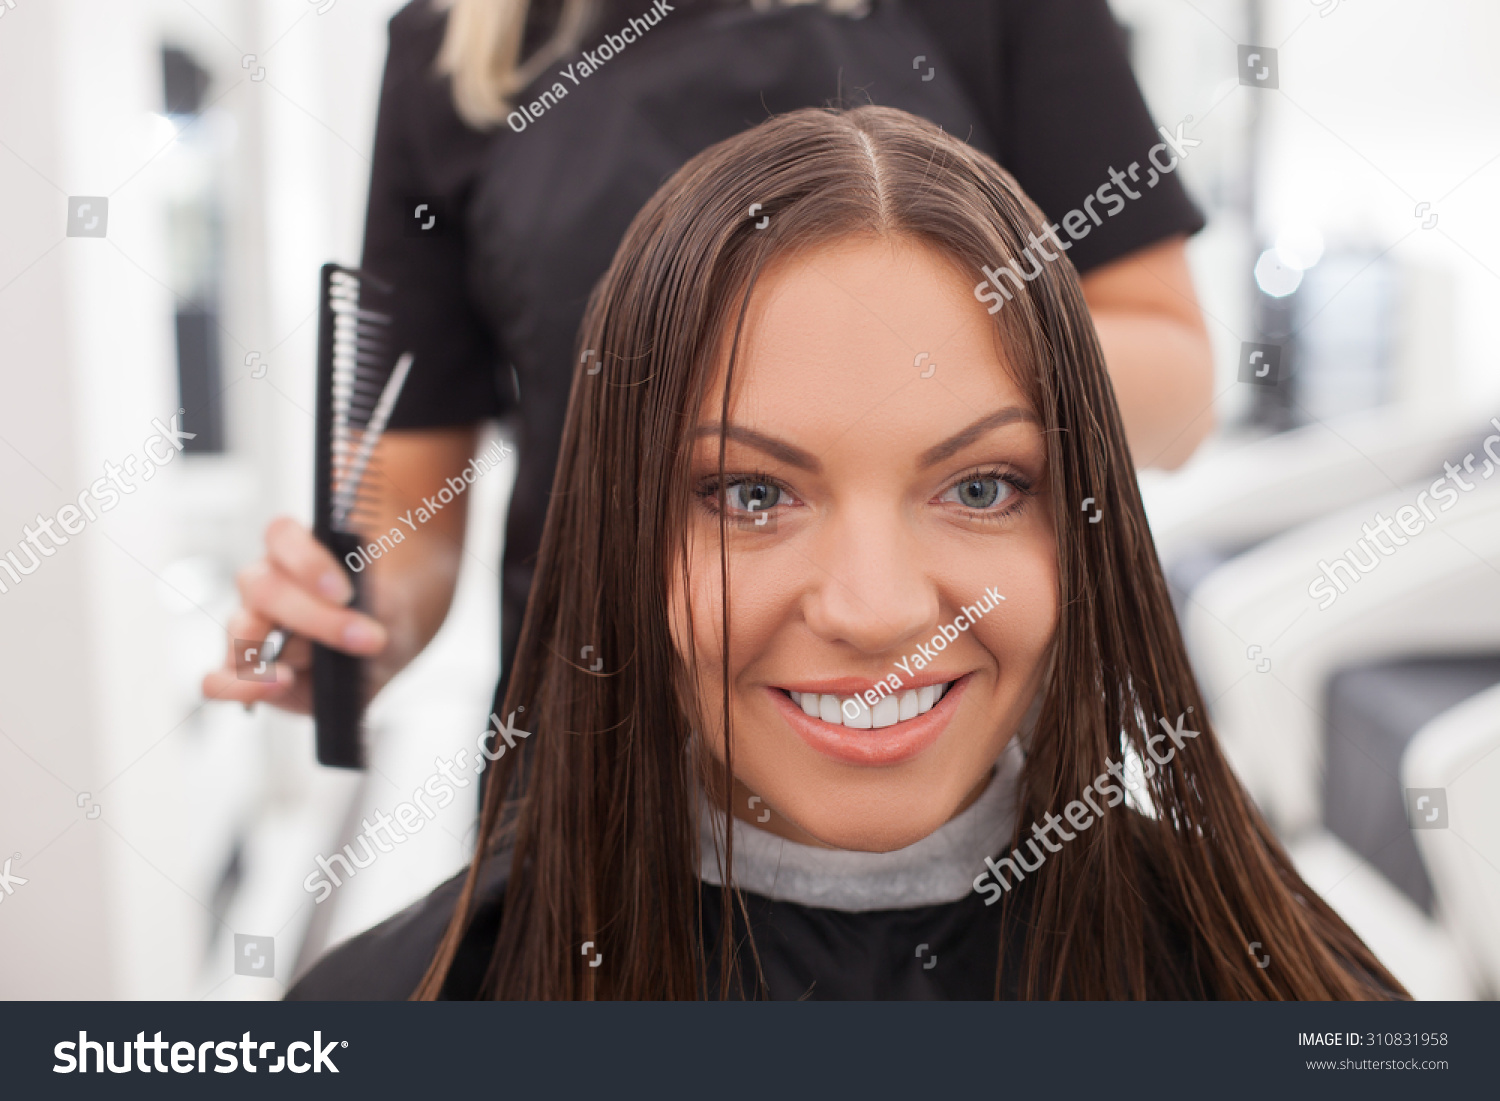 professional hairstylist is making a haircut to her customer she is standing behind the woman - Professional Hairstylist